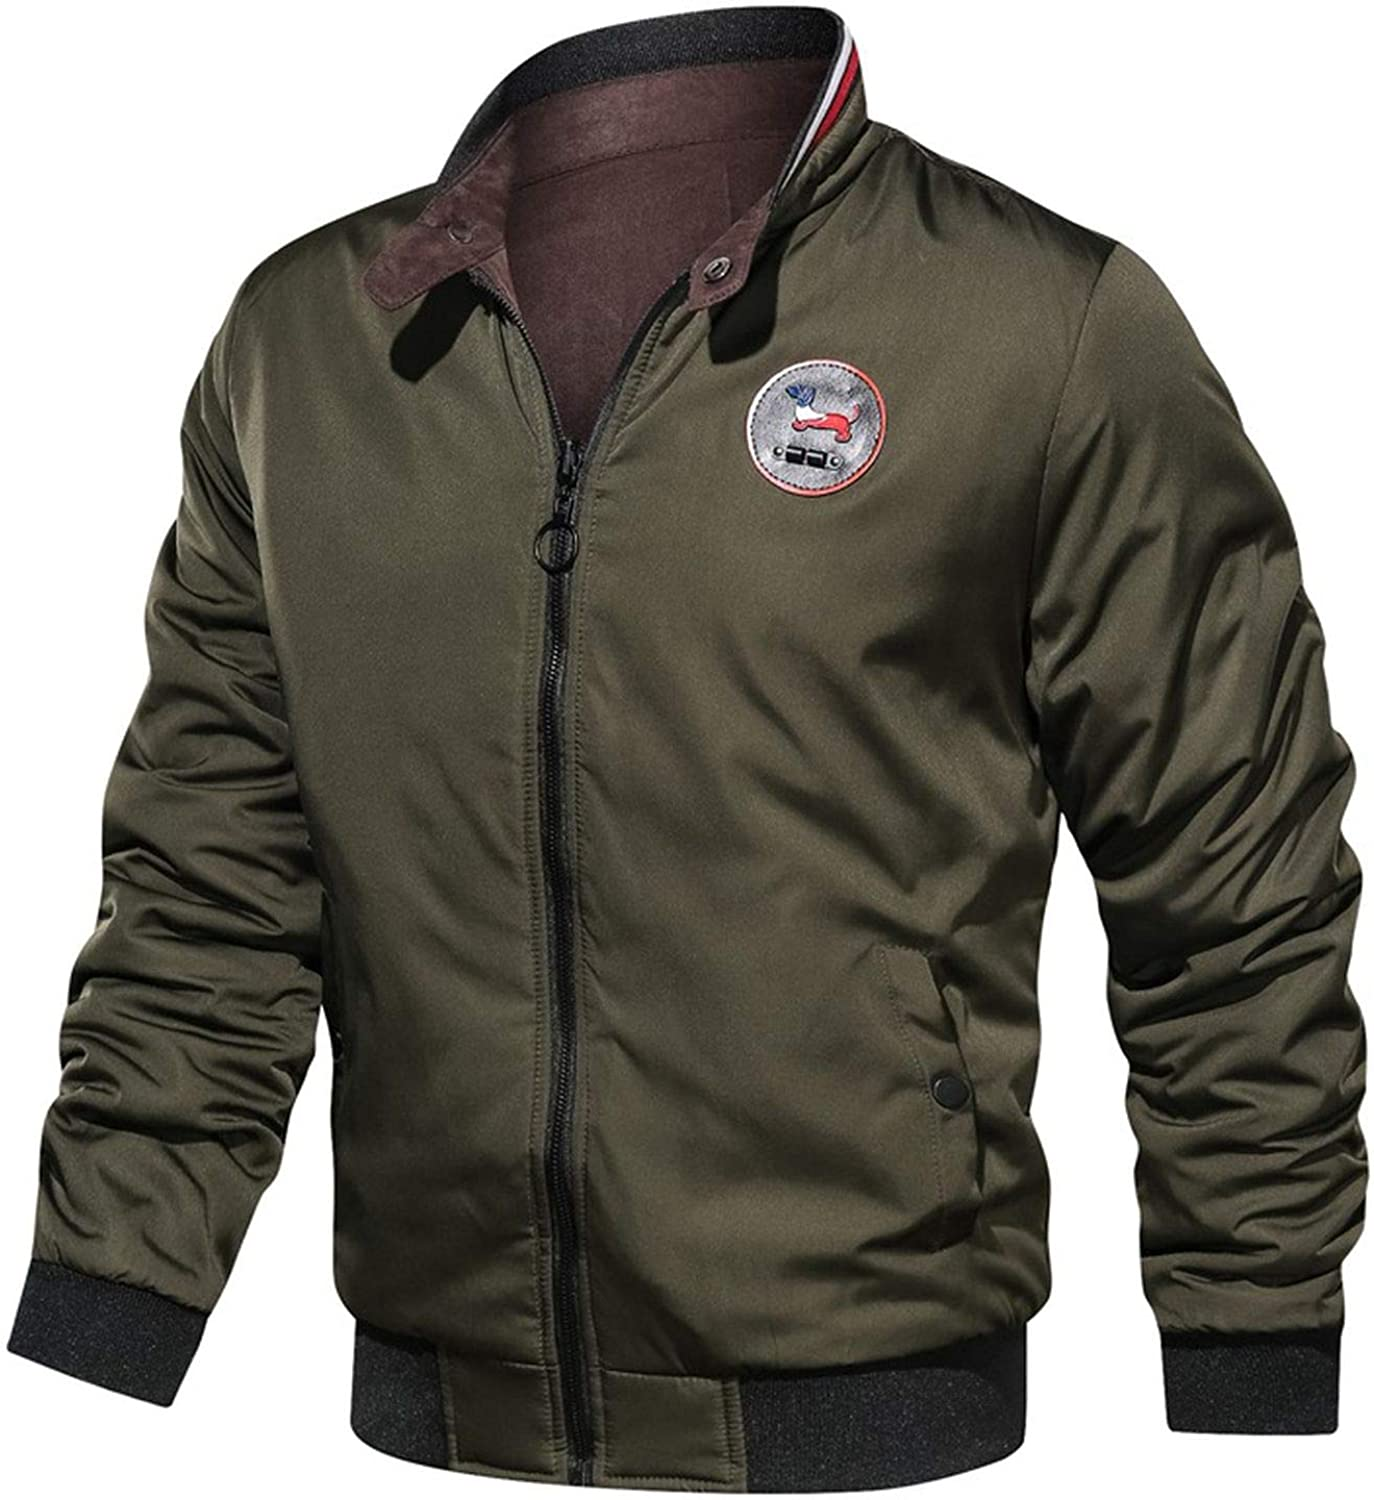 Thin Bomber Jacket for Us Air Force Pilot Flight Korean College Army Military Motorcycle Coats Outerwear 3XL